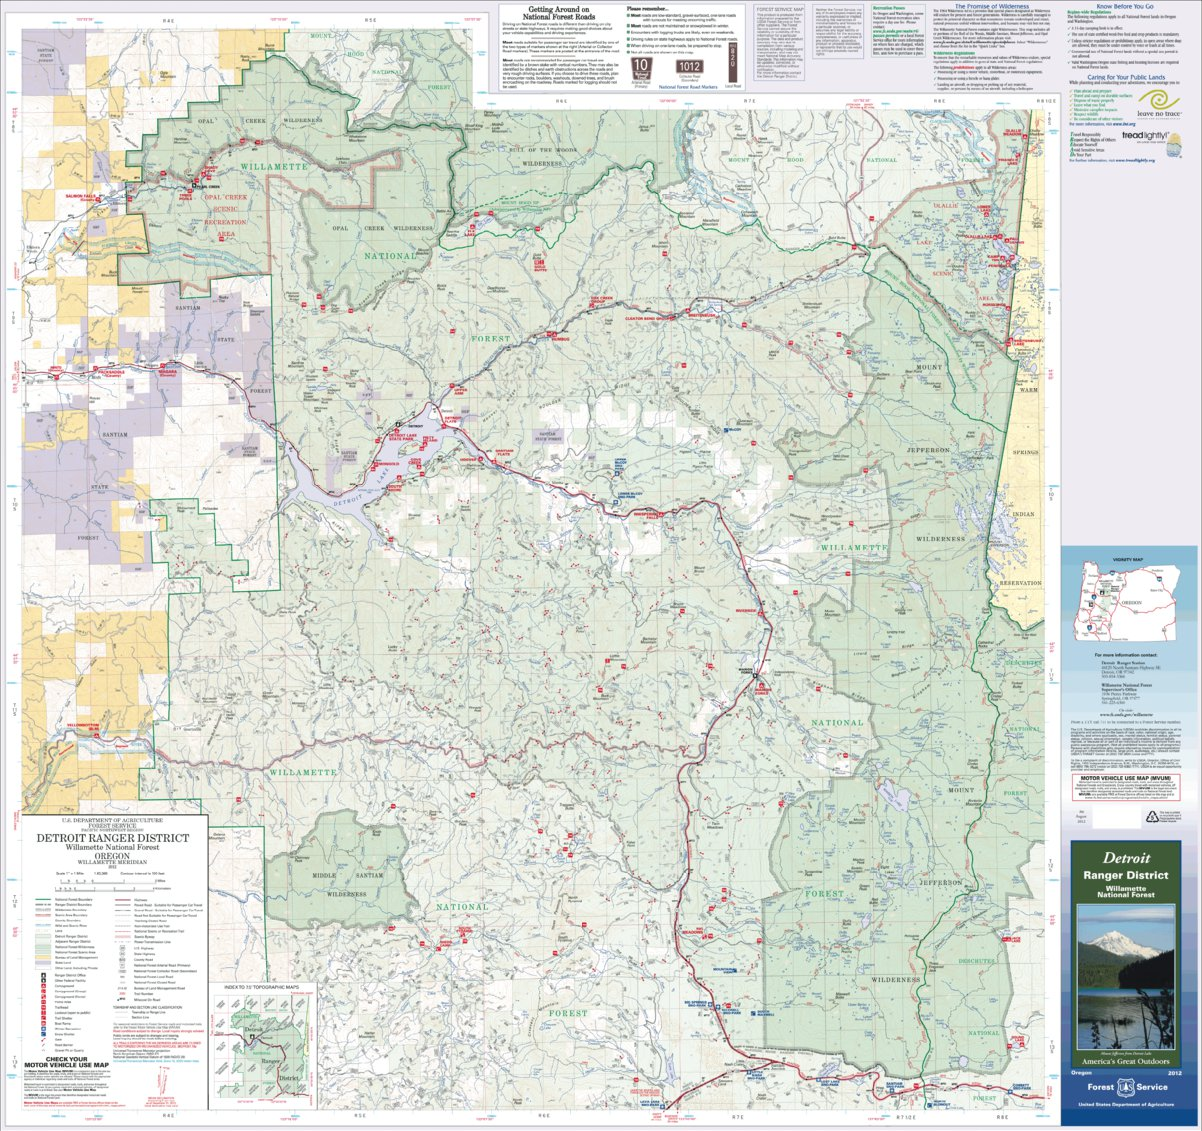 Detroit Ranger District Map - US Forest Service R6 - Avenza Maps on